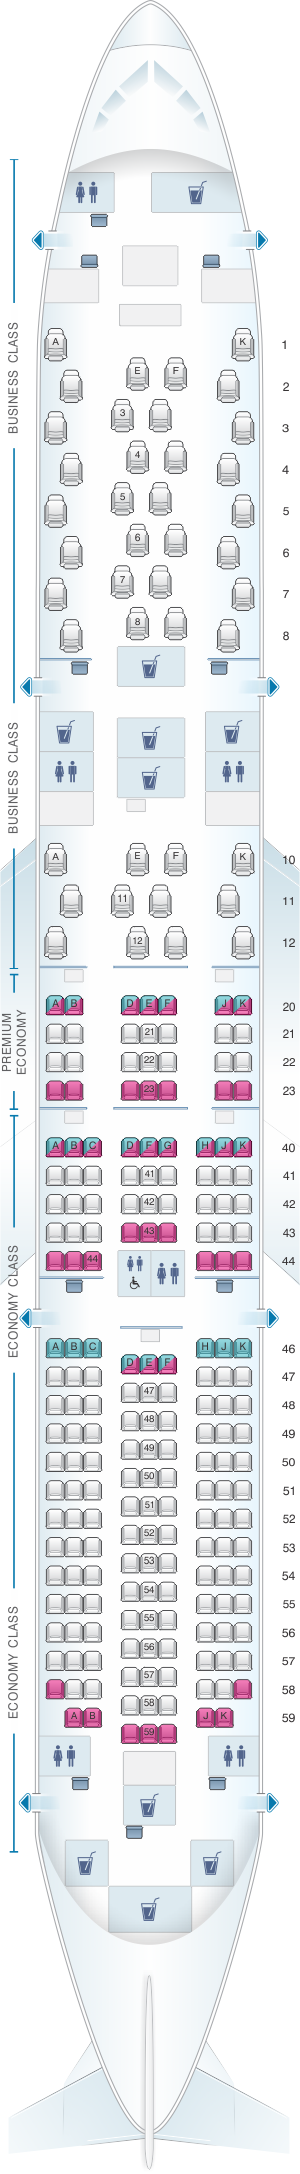 Qantas Airlines Boeing 737 800 Aircraft Seating Chart Qantas Airlines Australian Airlines Aircraft